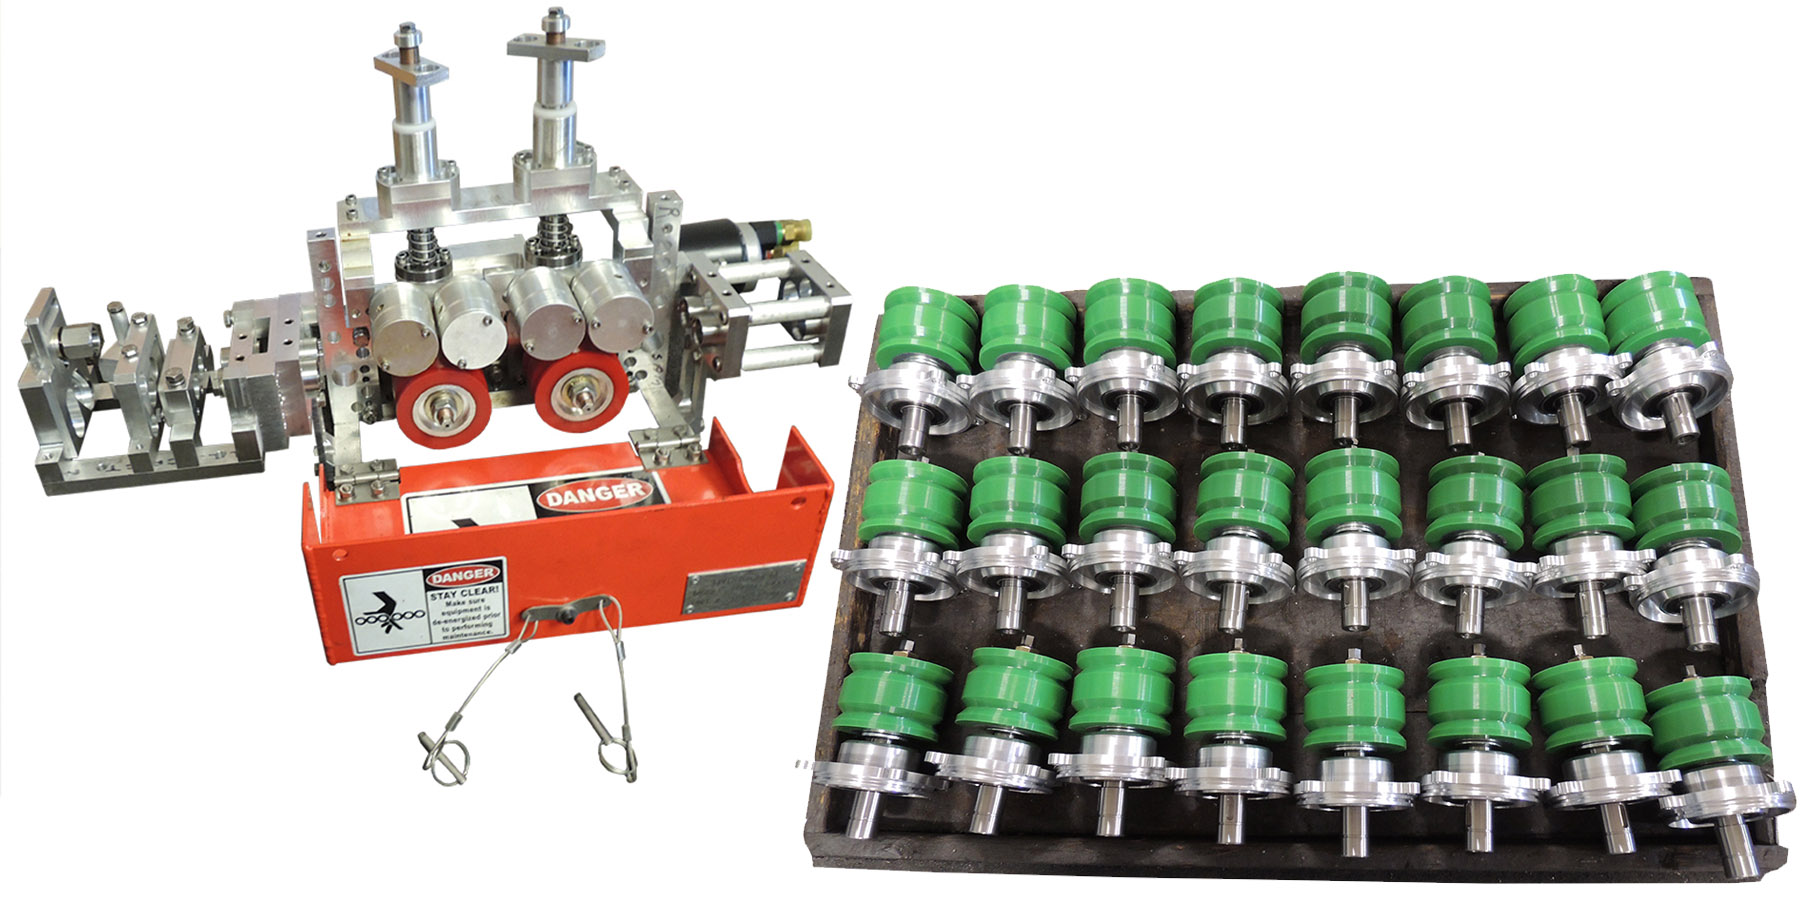 JonMar Gear and Machine produces an assortment of parts